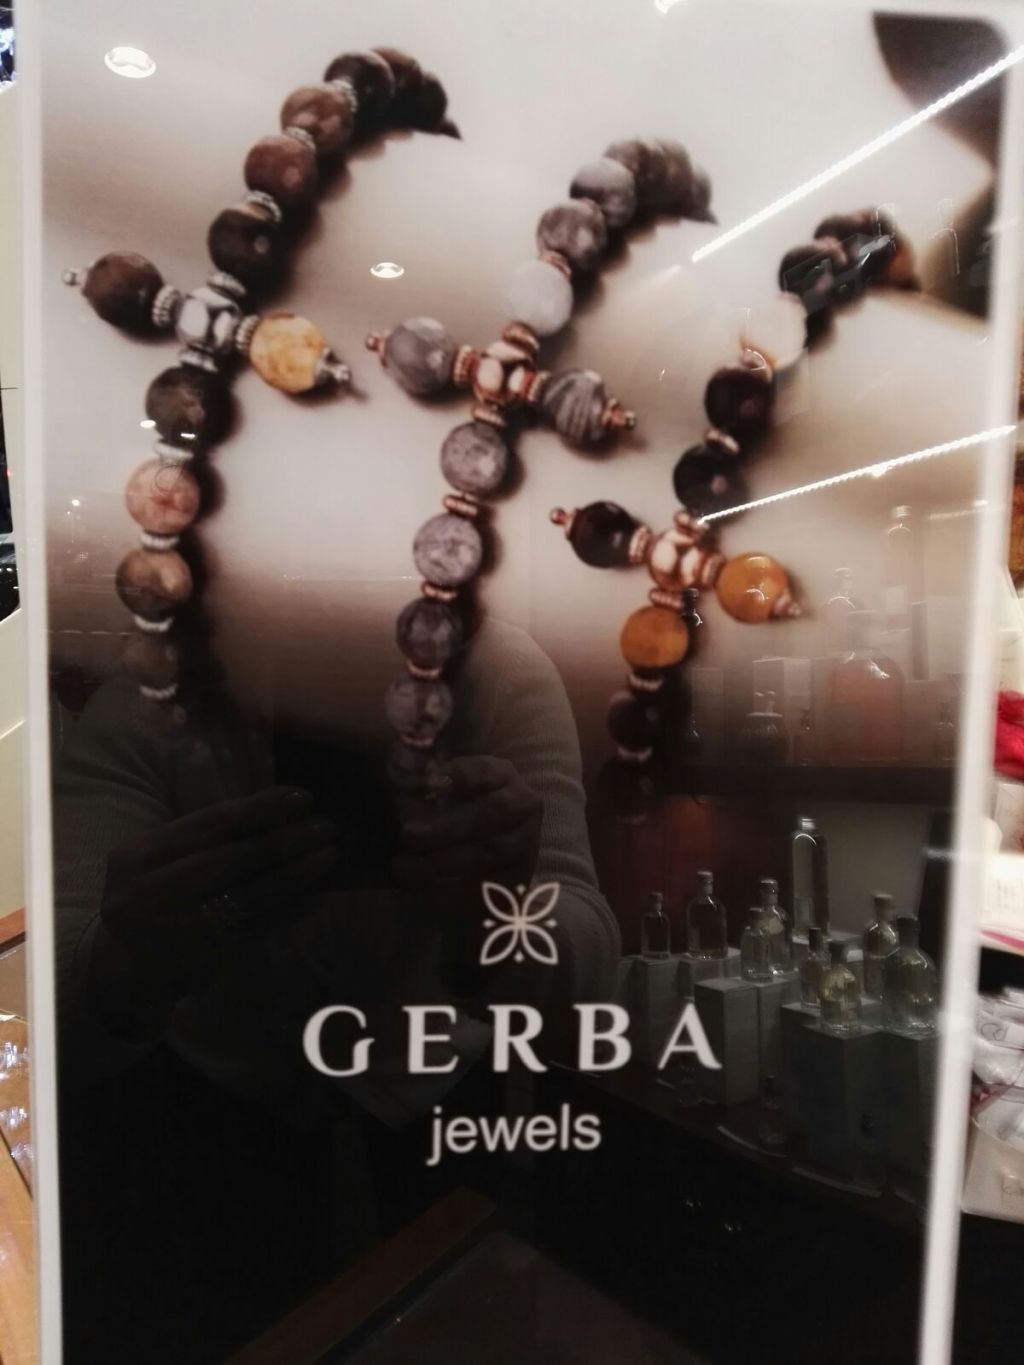 gerba jewels